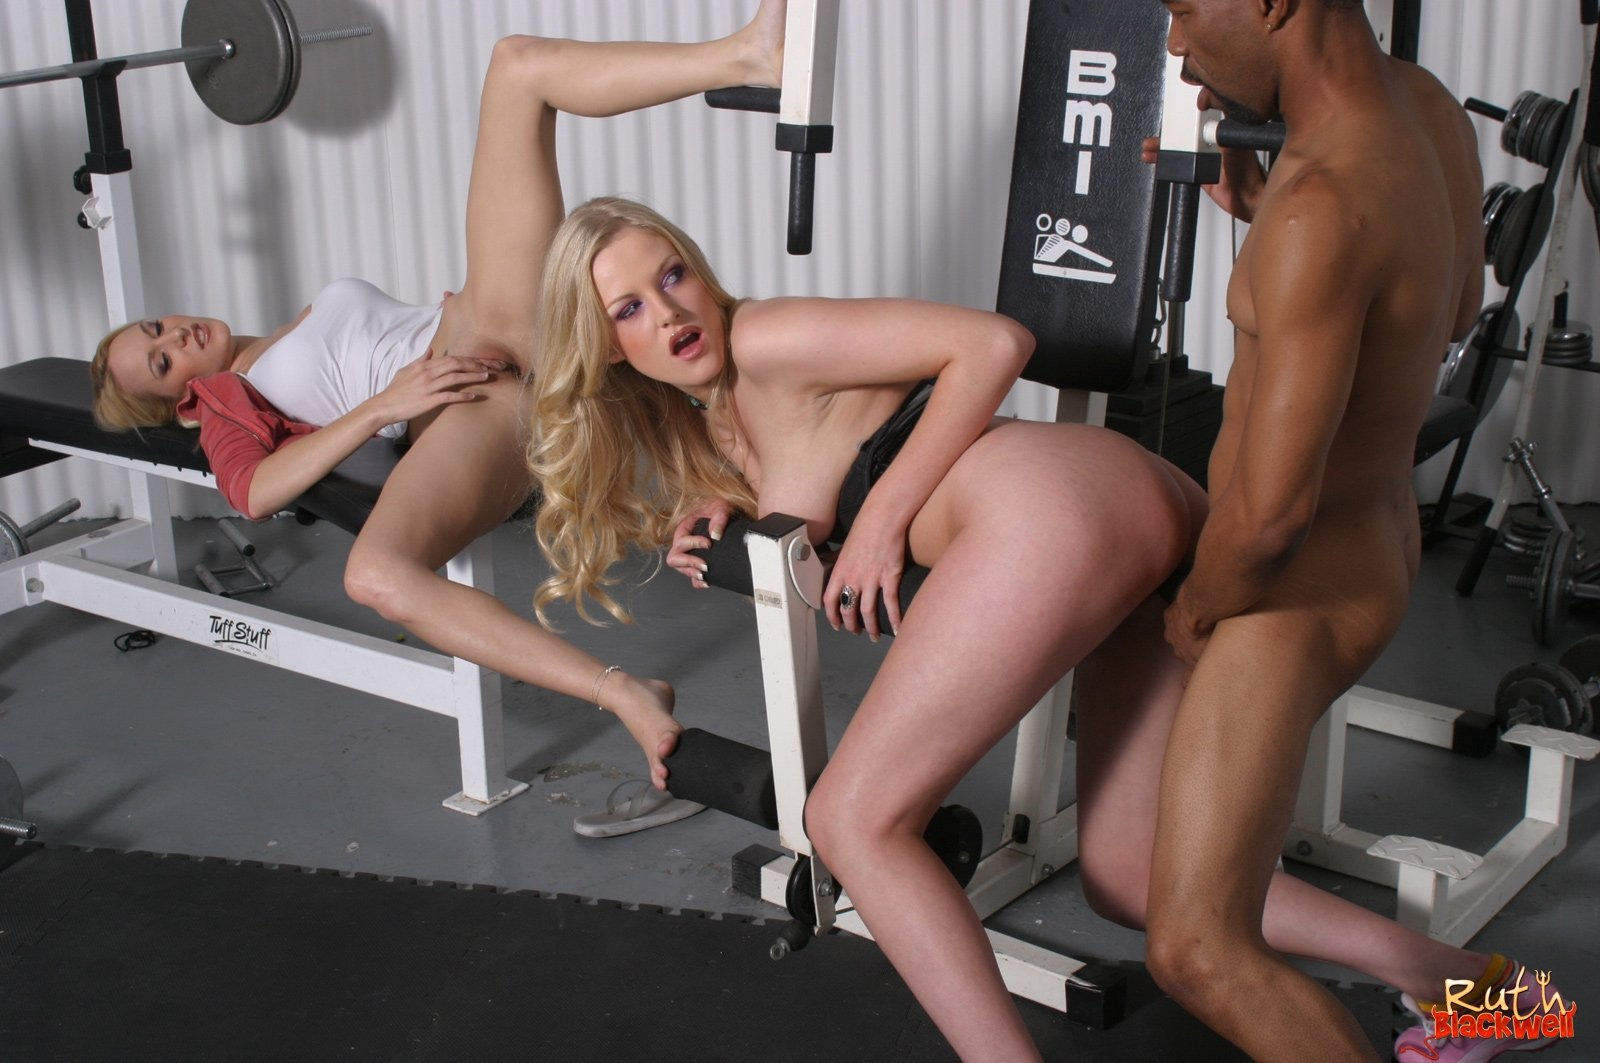 Petite babes first time fuck with fitness instructor